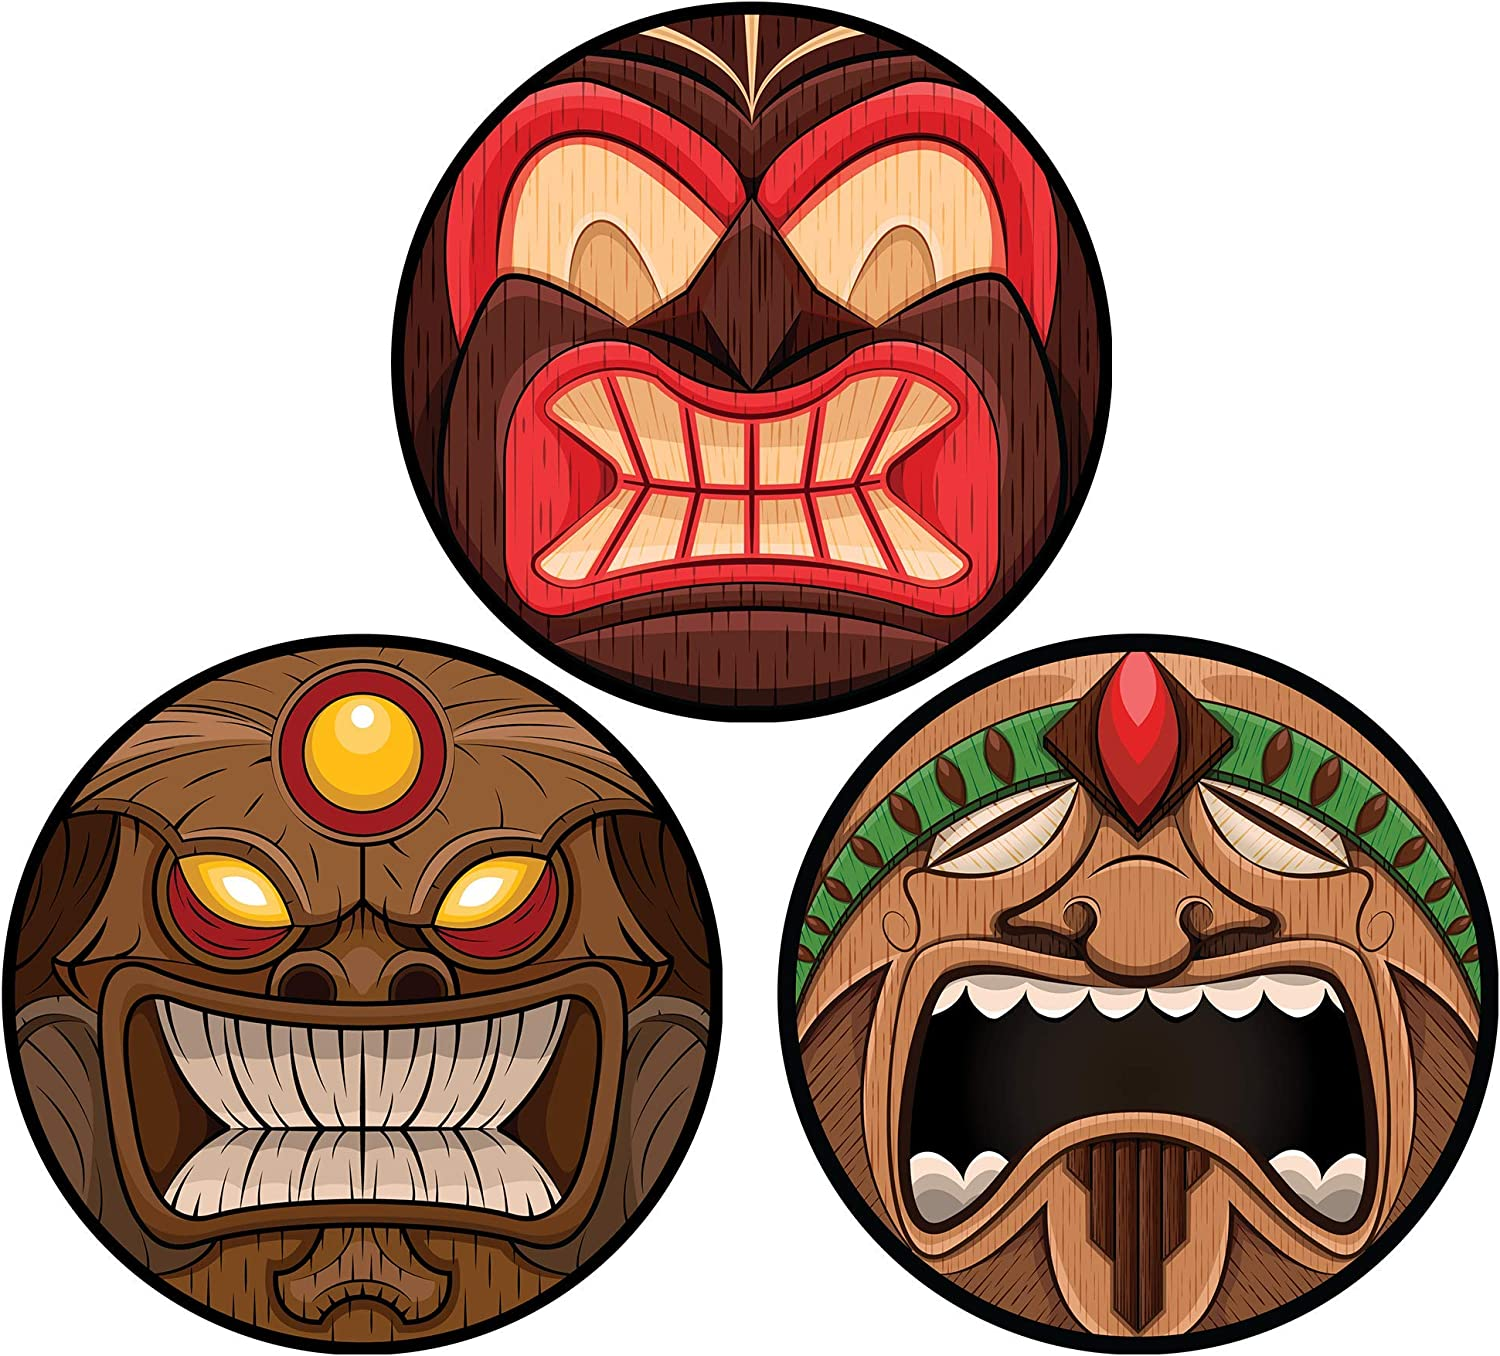 Hawaiian Tiki Style Face Mask Car Magnets, Tropical Magnetic Decoration Decal for Locker or Fridge, Set of 3, 3 3/4 Inches